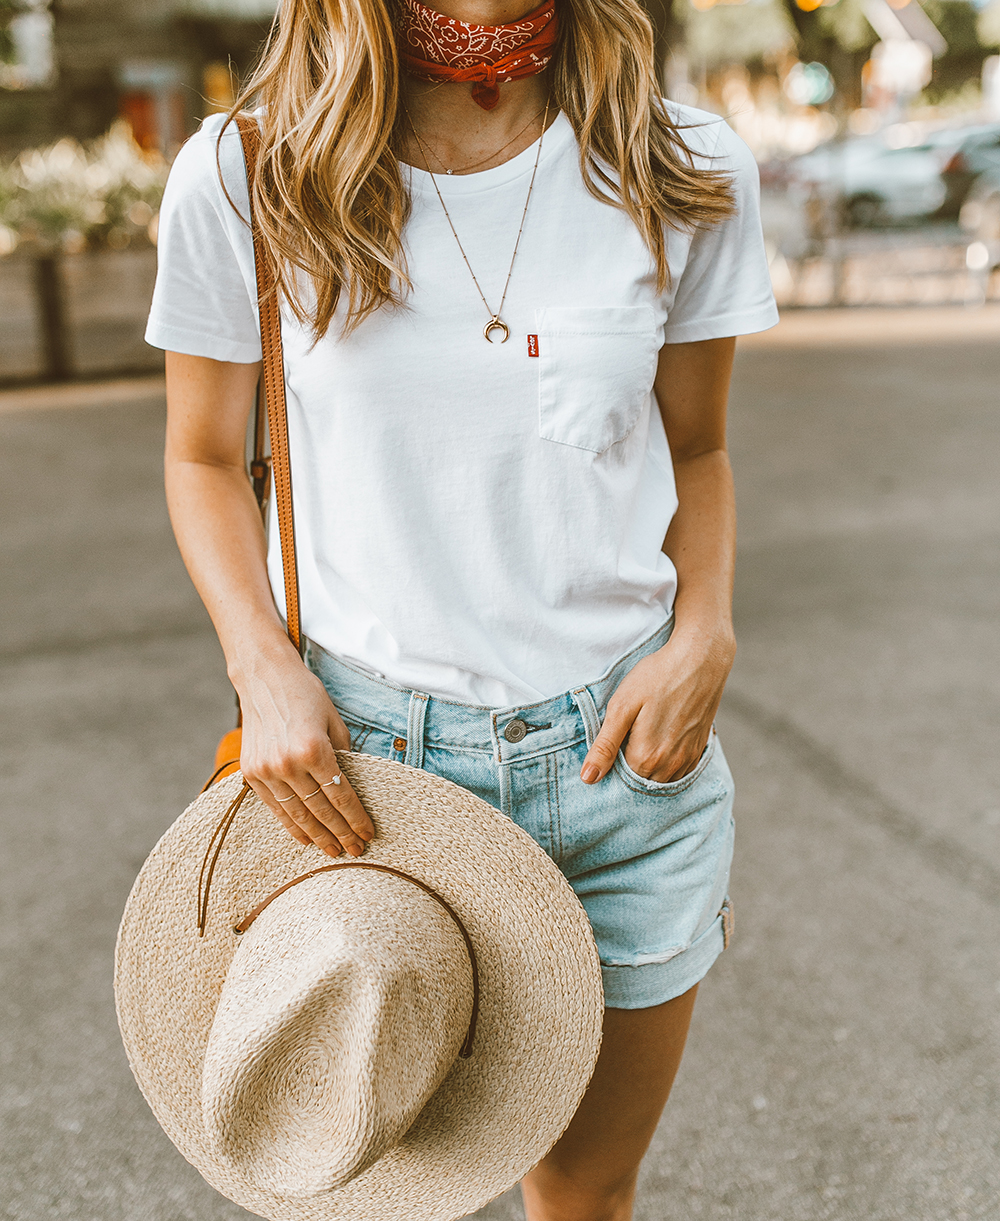 livvyland blog olivia watson austin texas fashion style blogger what to wear levis denim shorts festival outfit idea 8 - Summer time In Levi's